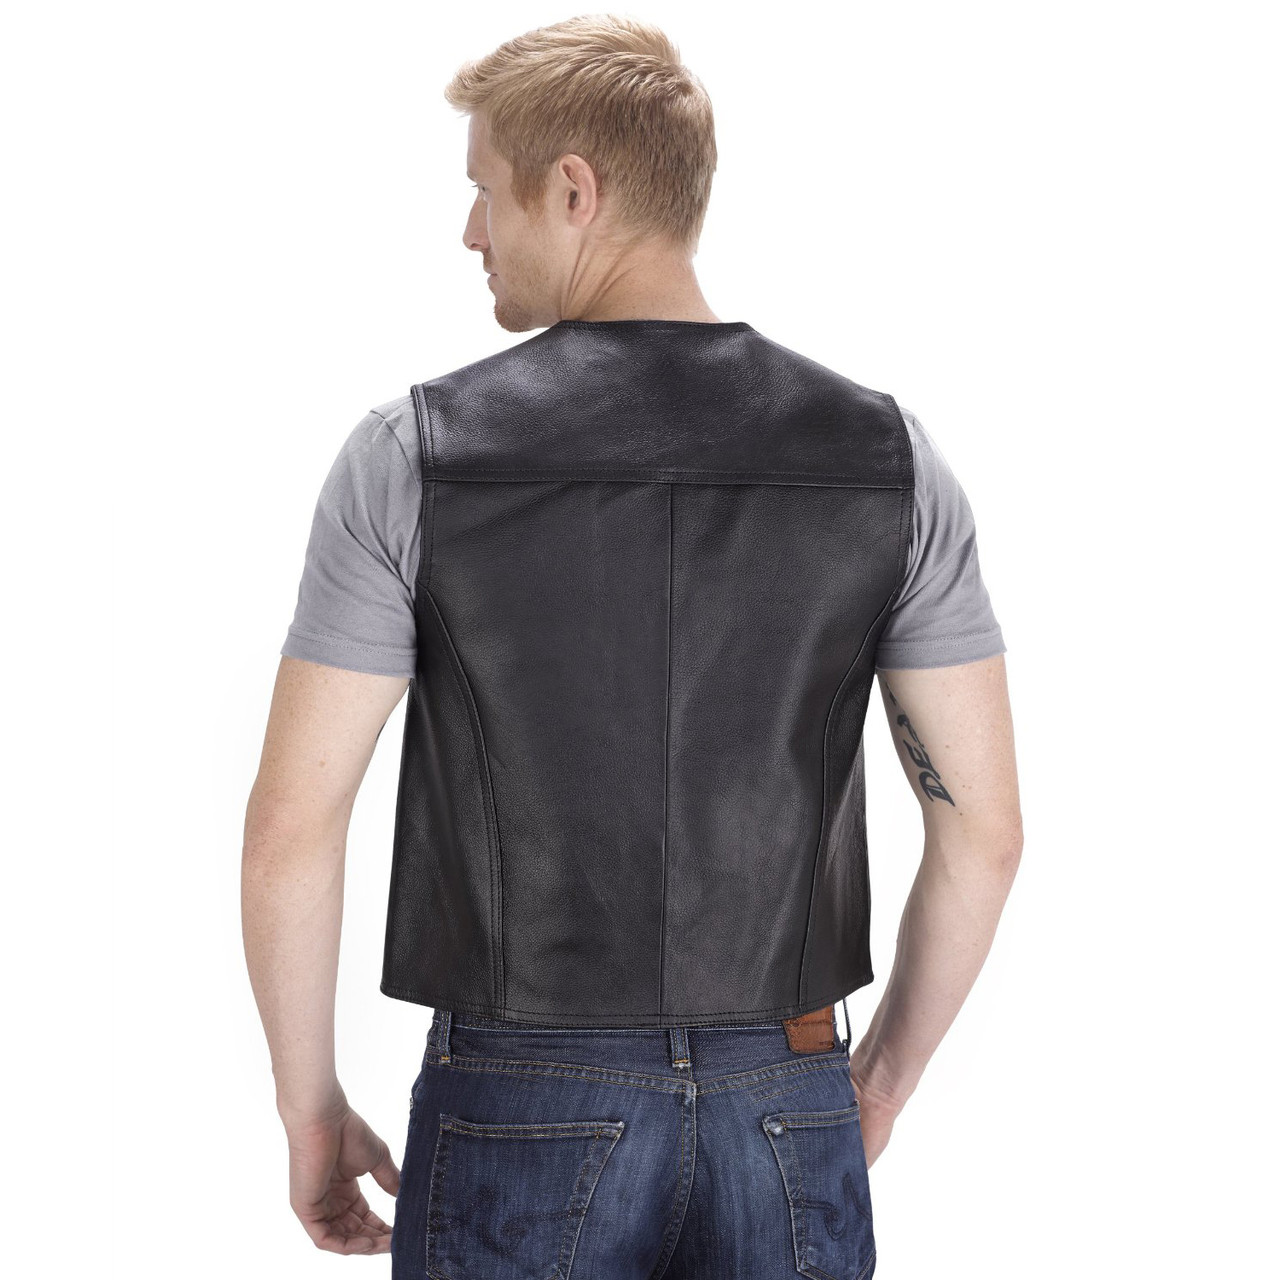 VikingCycle Raider Motorcycle Vest for Men Back Side